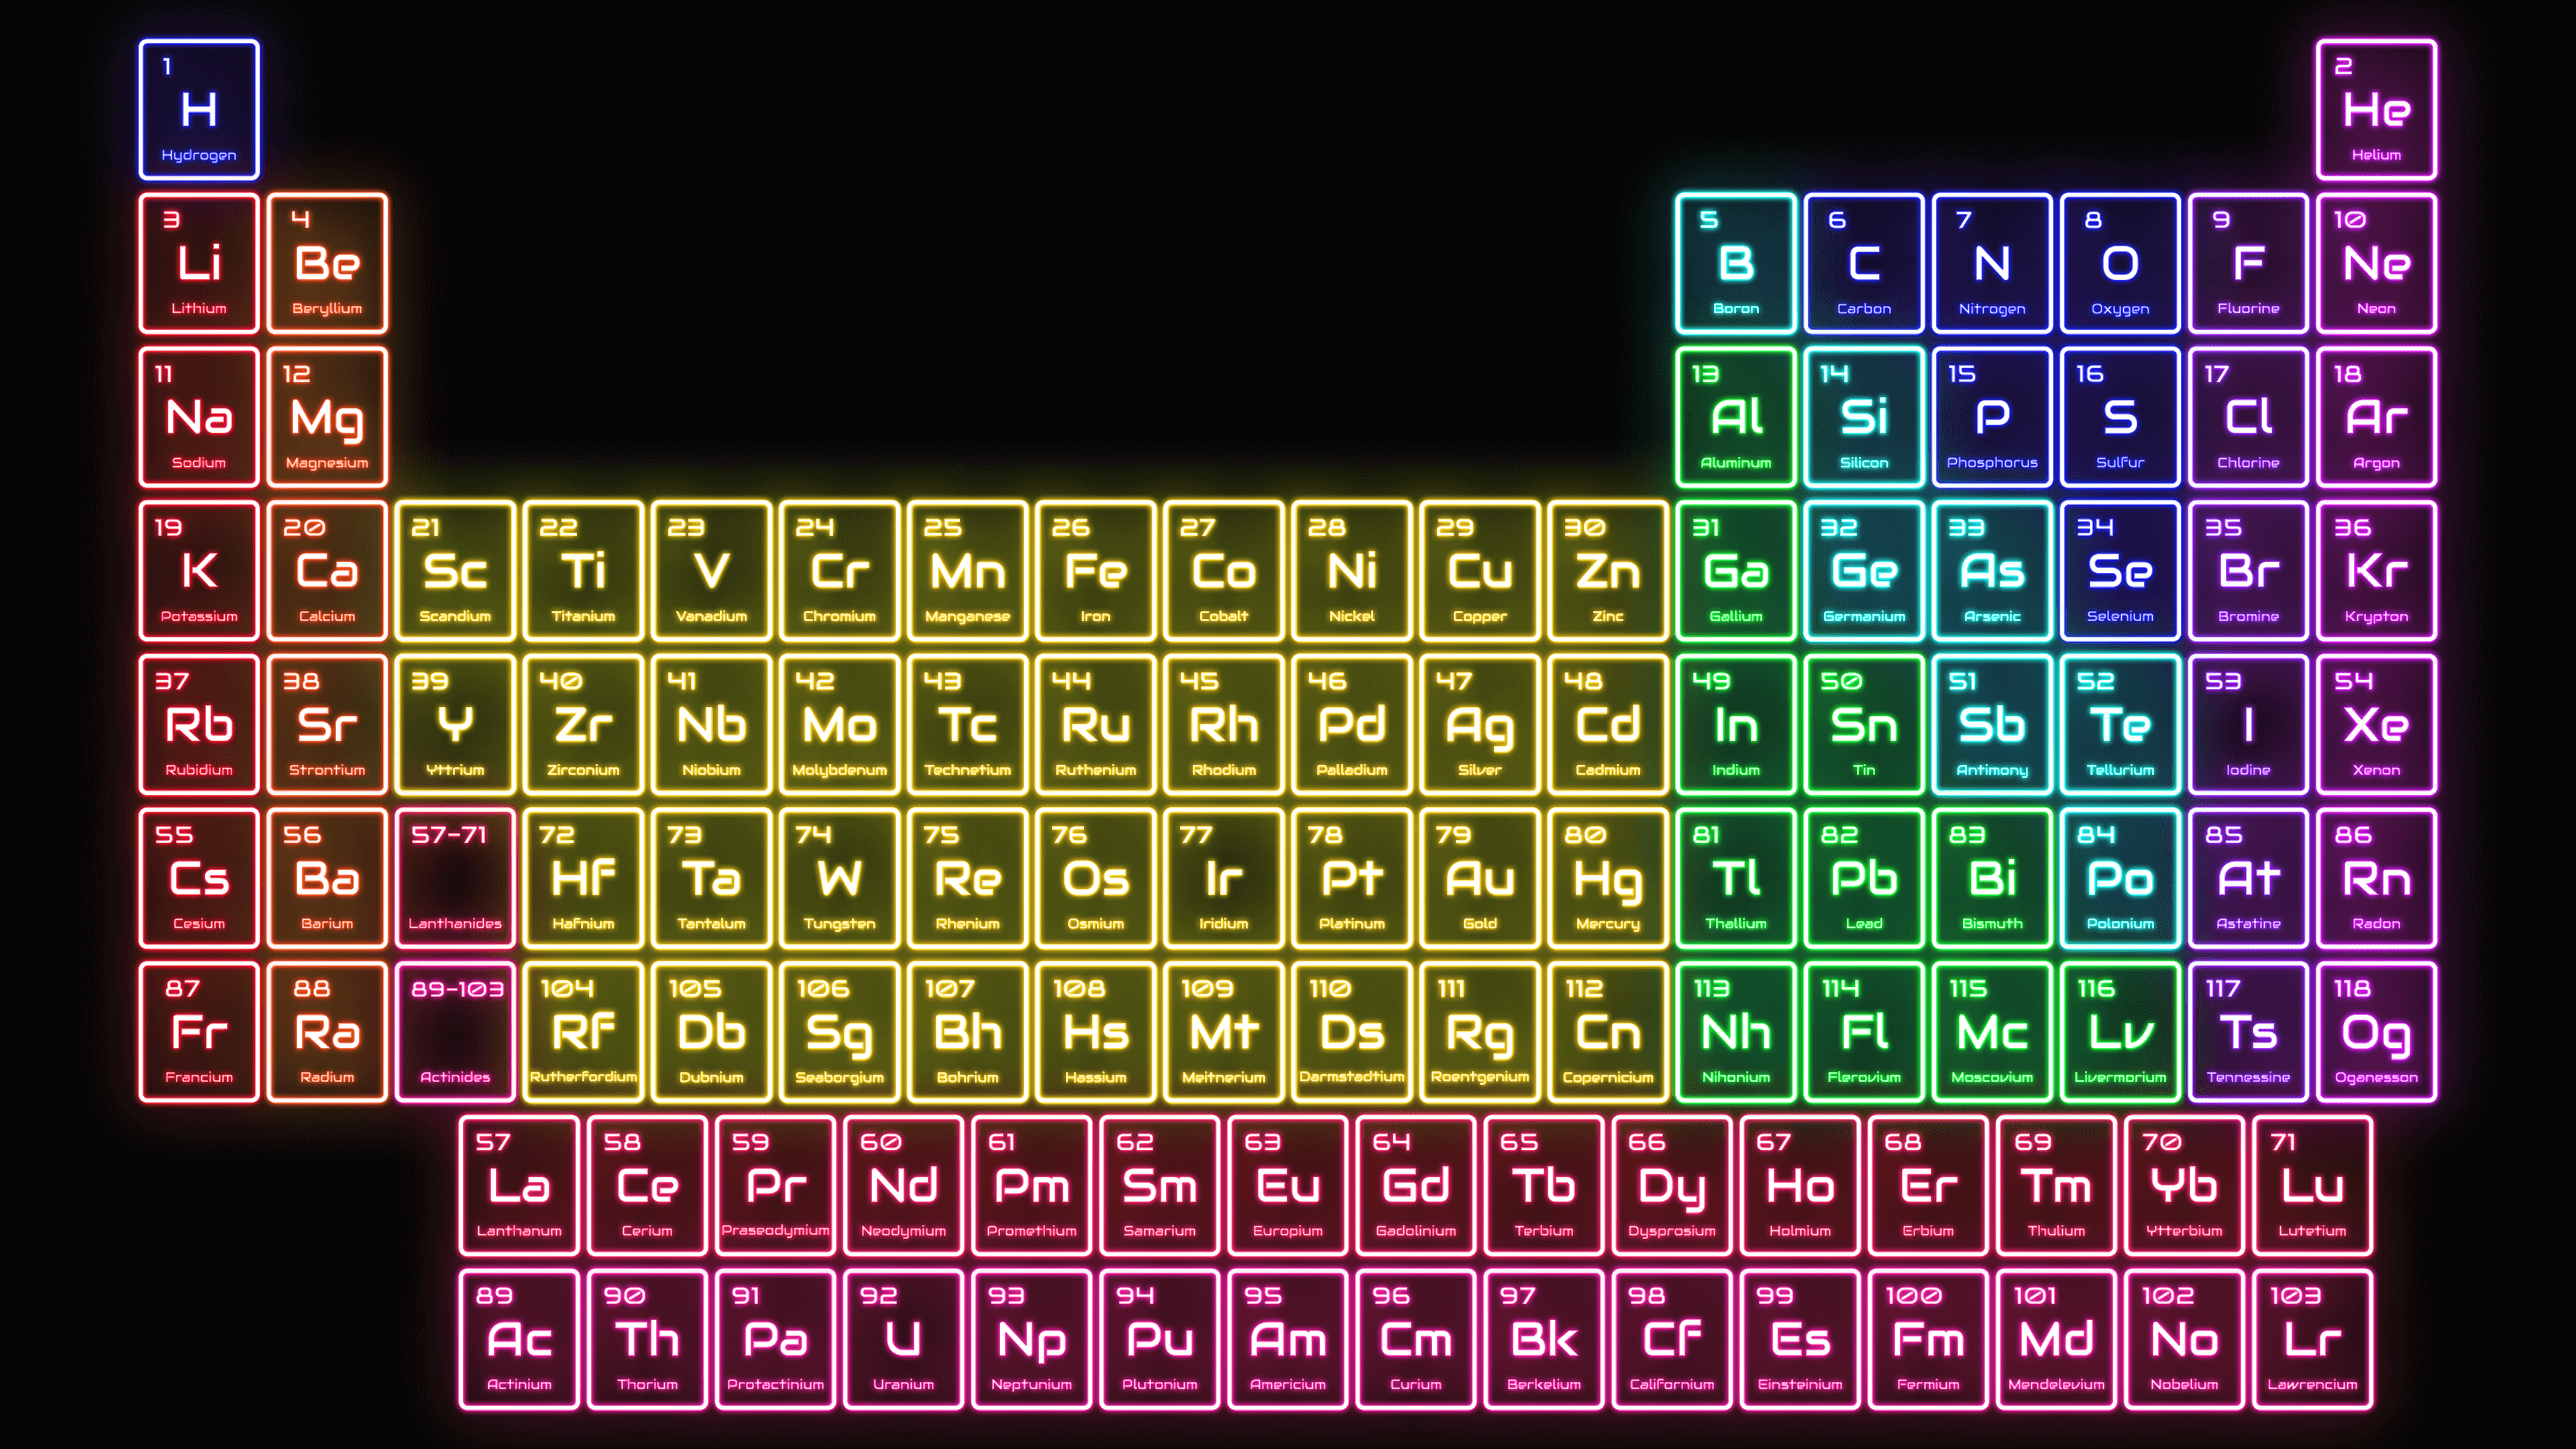 This colorful neon lights periodic table wallpaper shines brightly this colorful neon lights periodic table wallpaper shines brightly with a subtle glow contains the gamestrikefo Choice Image